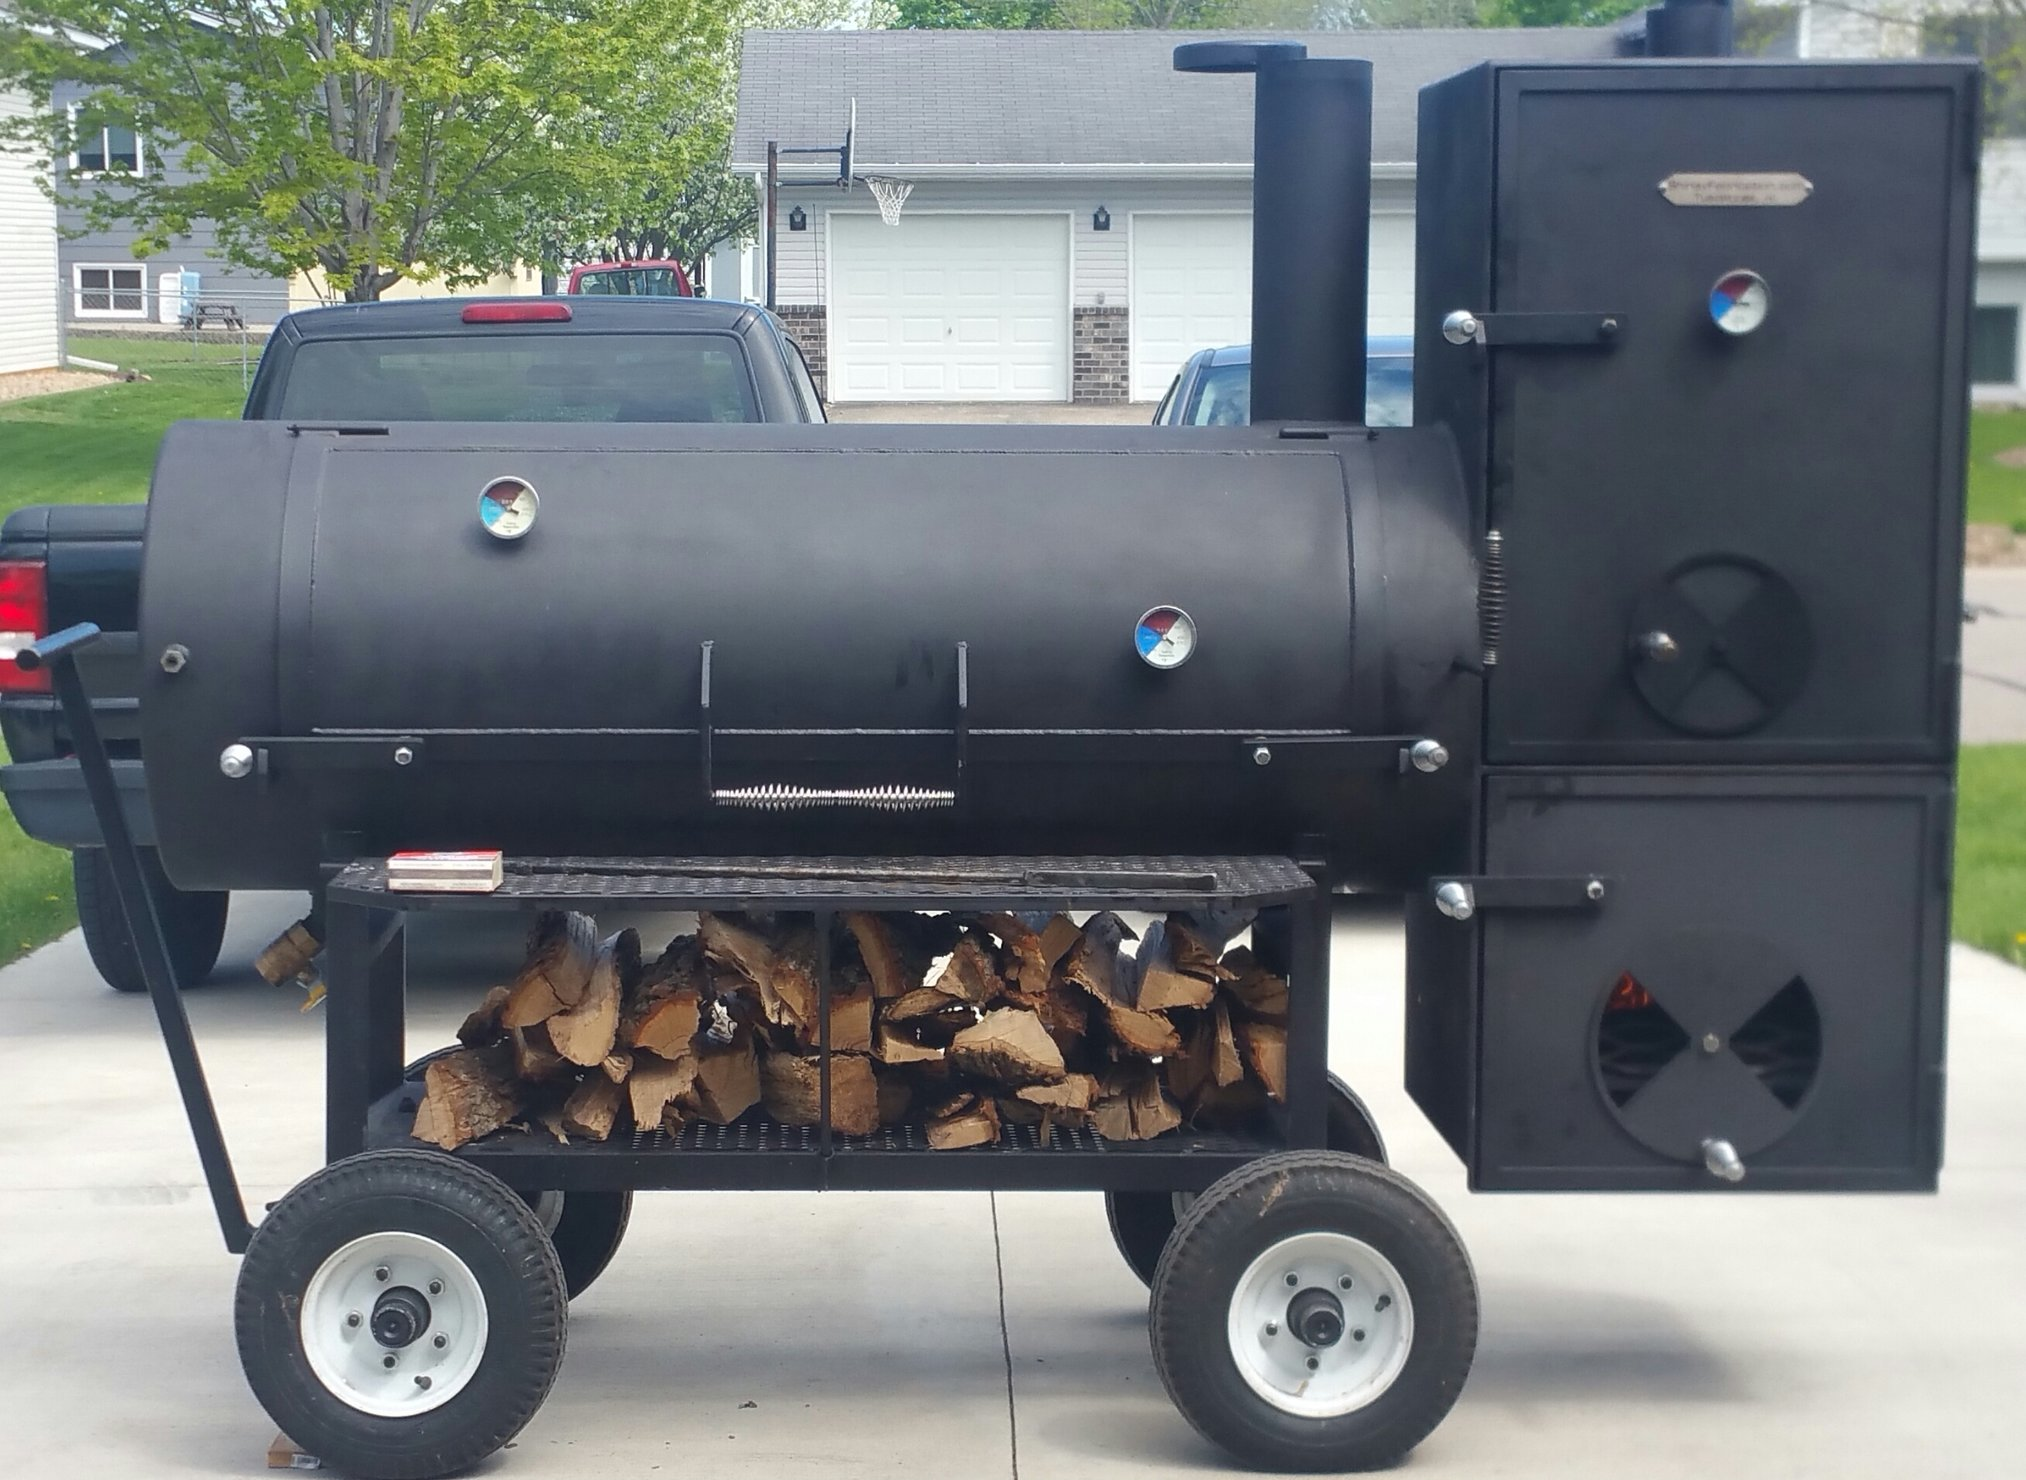 I Sold My XL and Small Egg, I'll Shirley Miss Them! — Big Green Egg